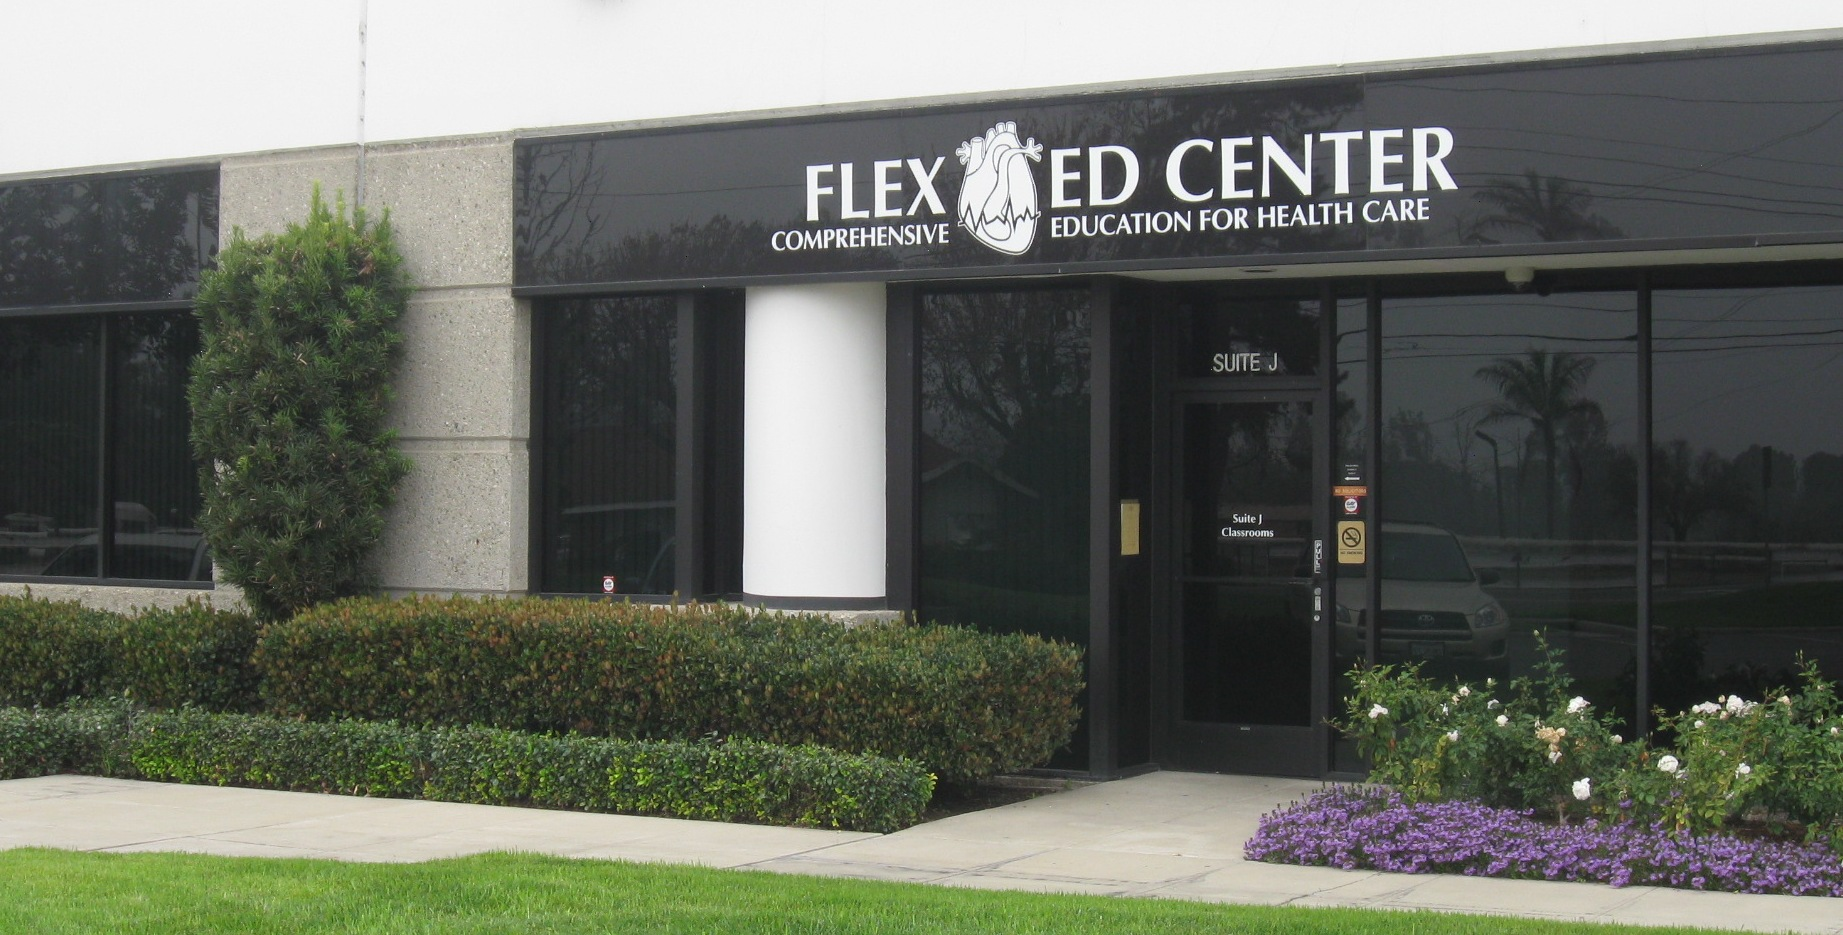 Flex Ed Center